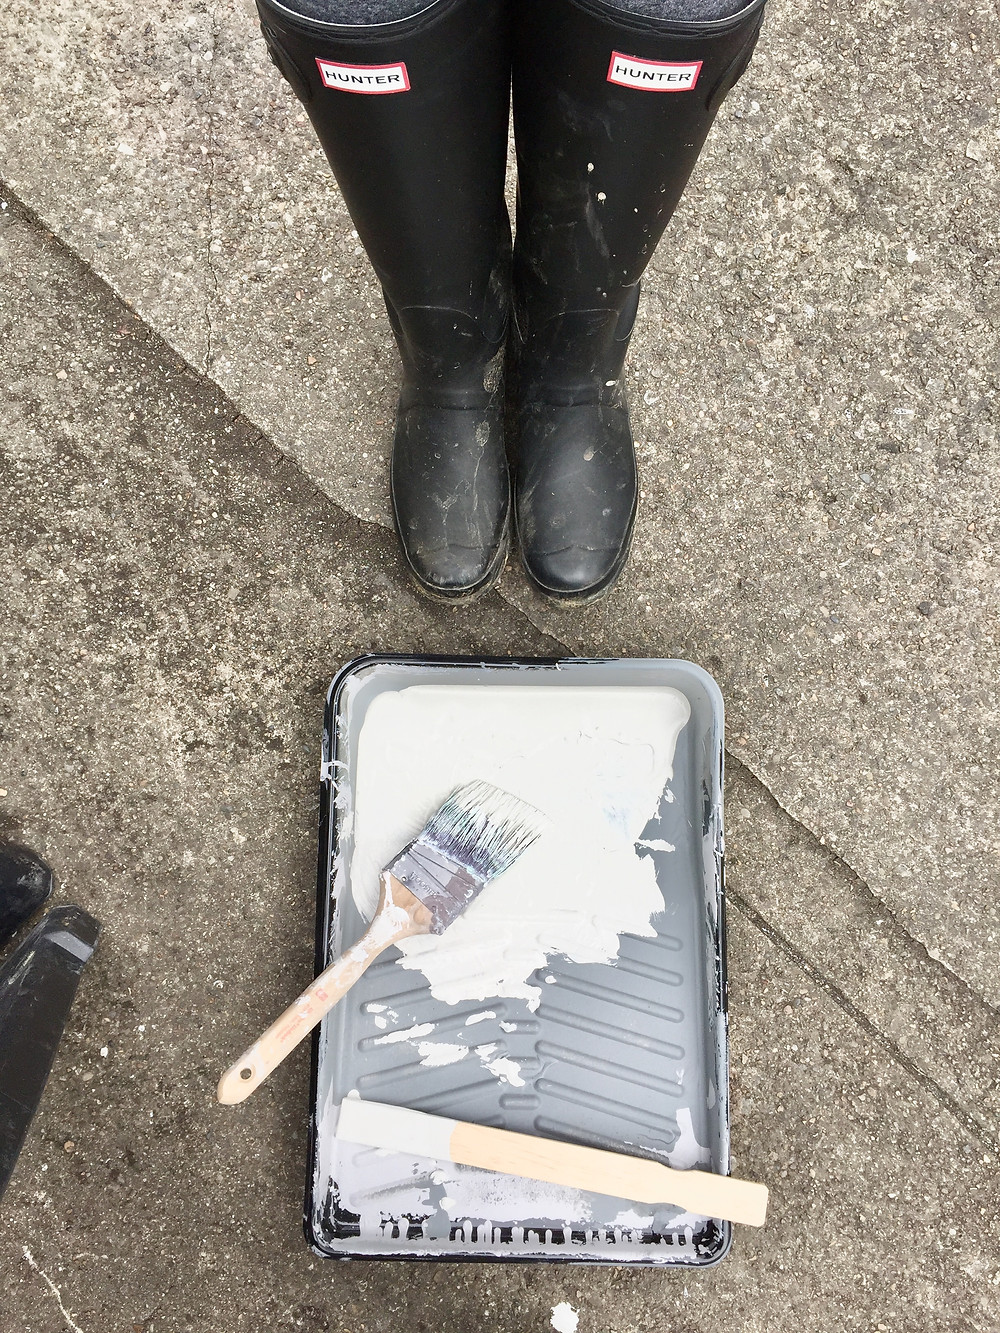 Hunter boots paint brush paint tray